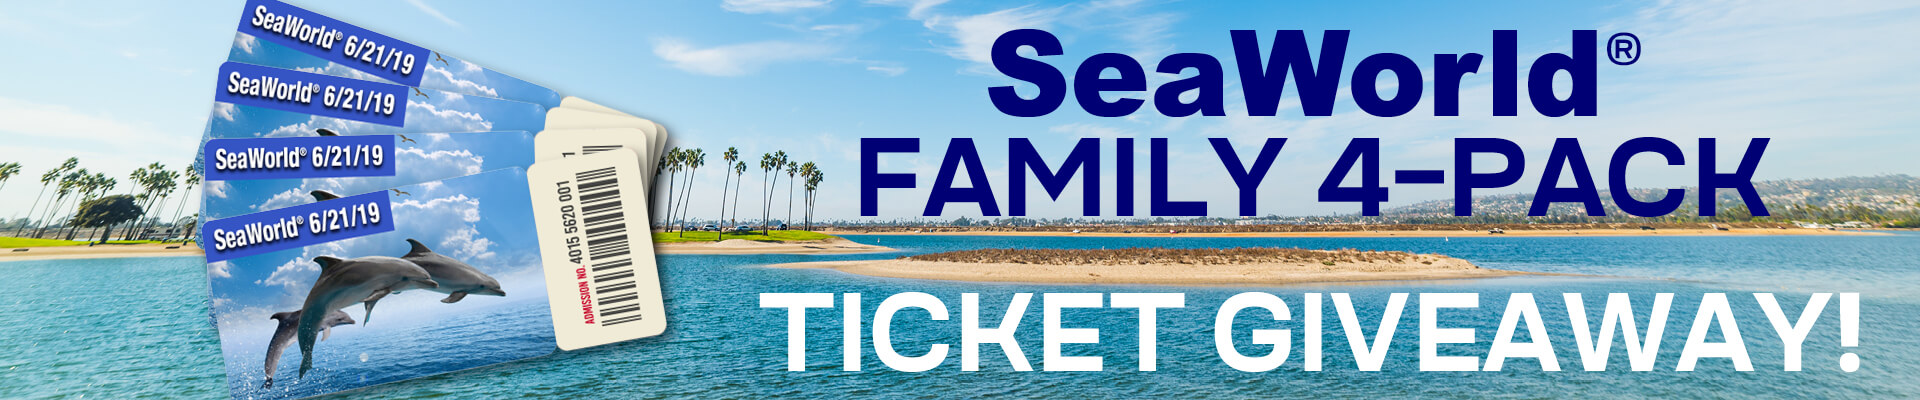 SeaWorld Family 4-Pack Ticket Giveaway!